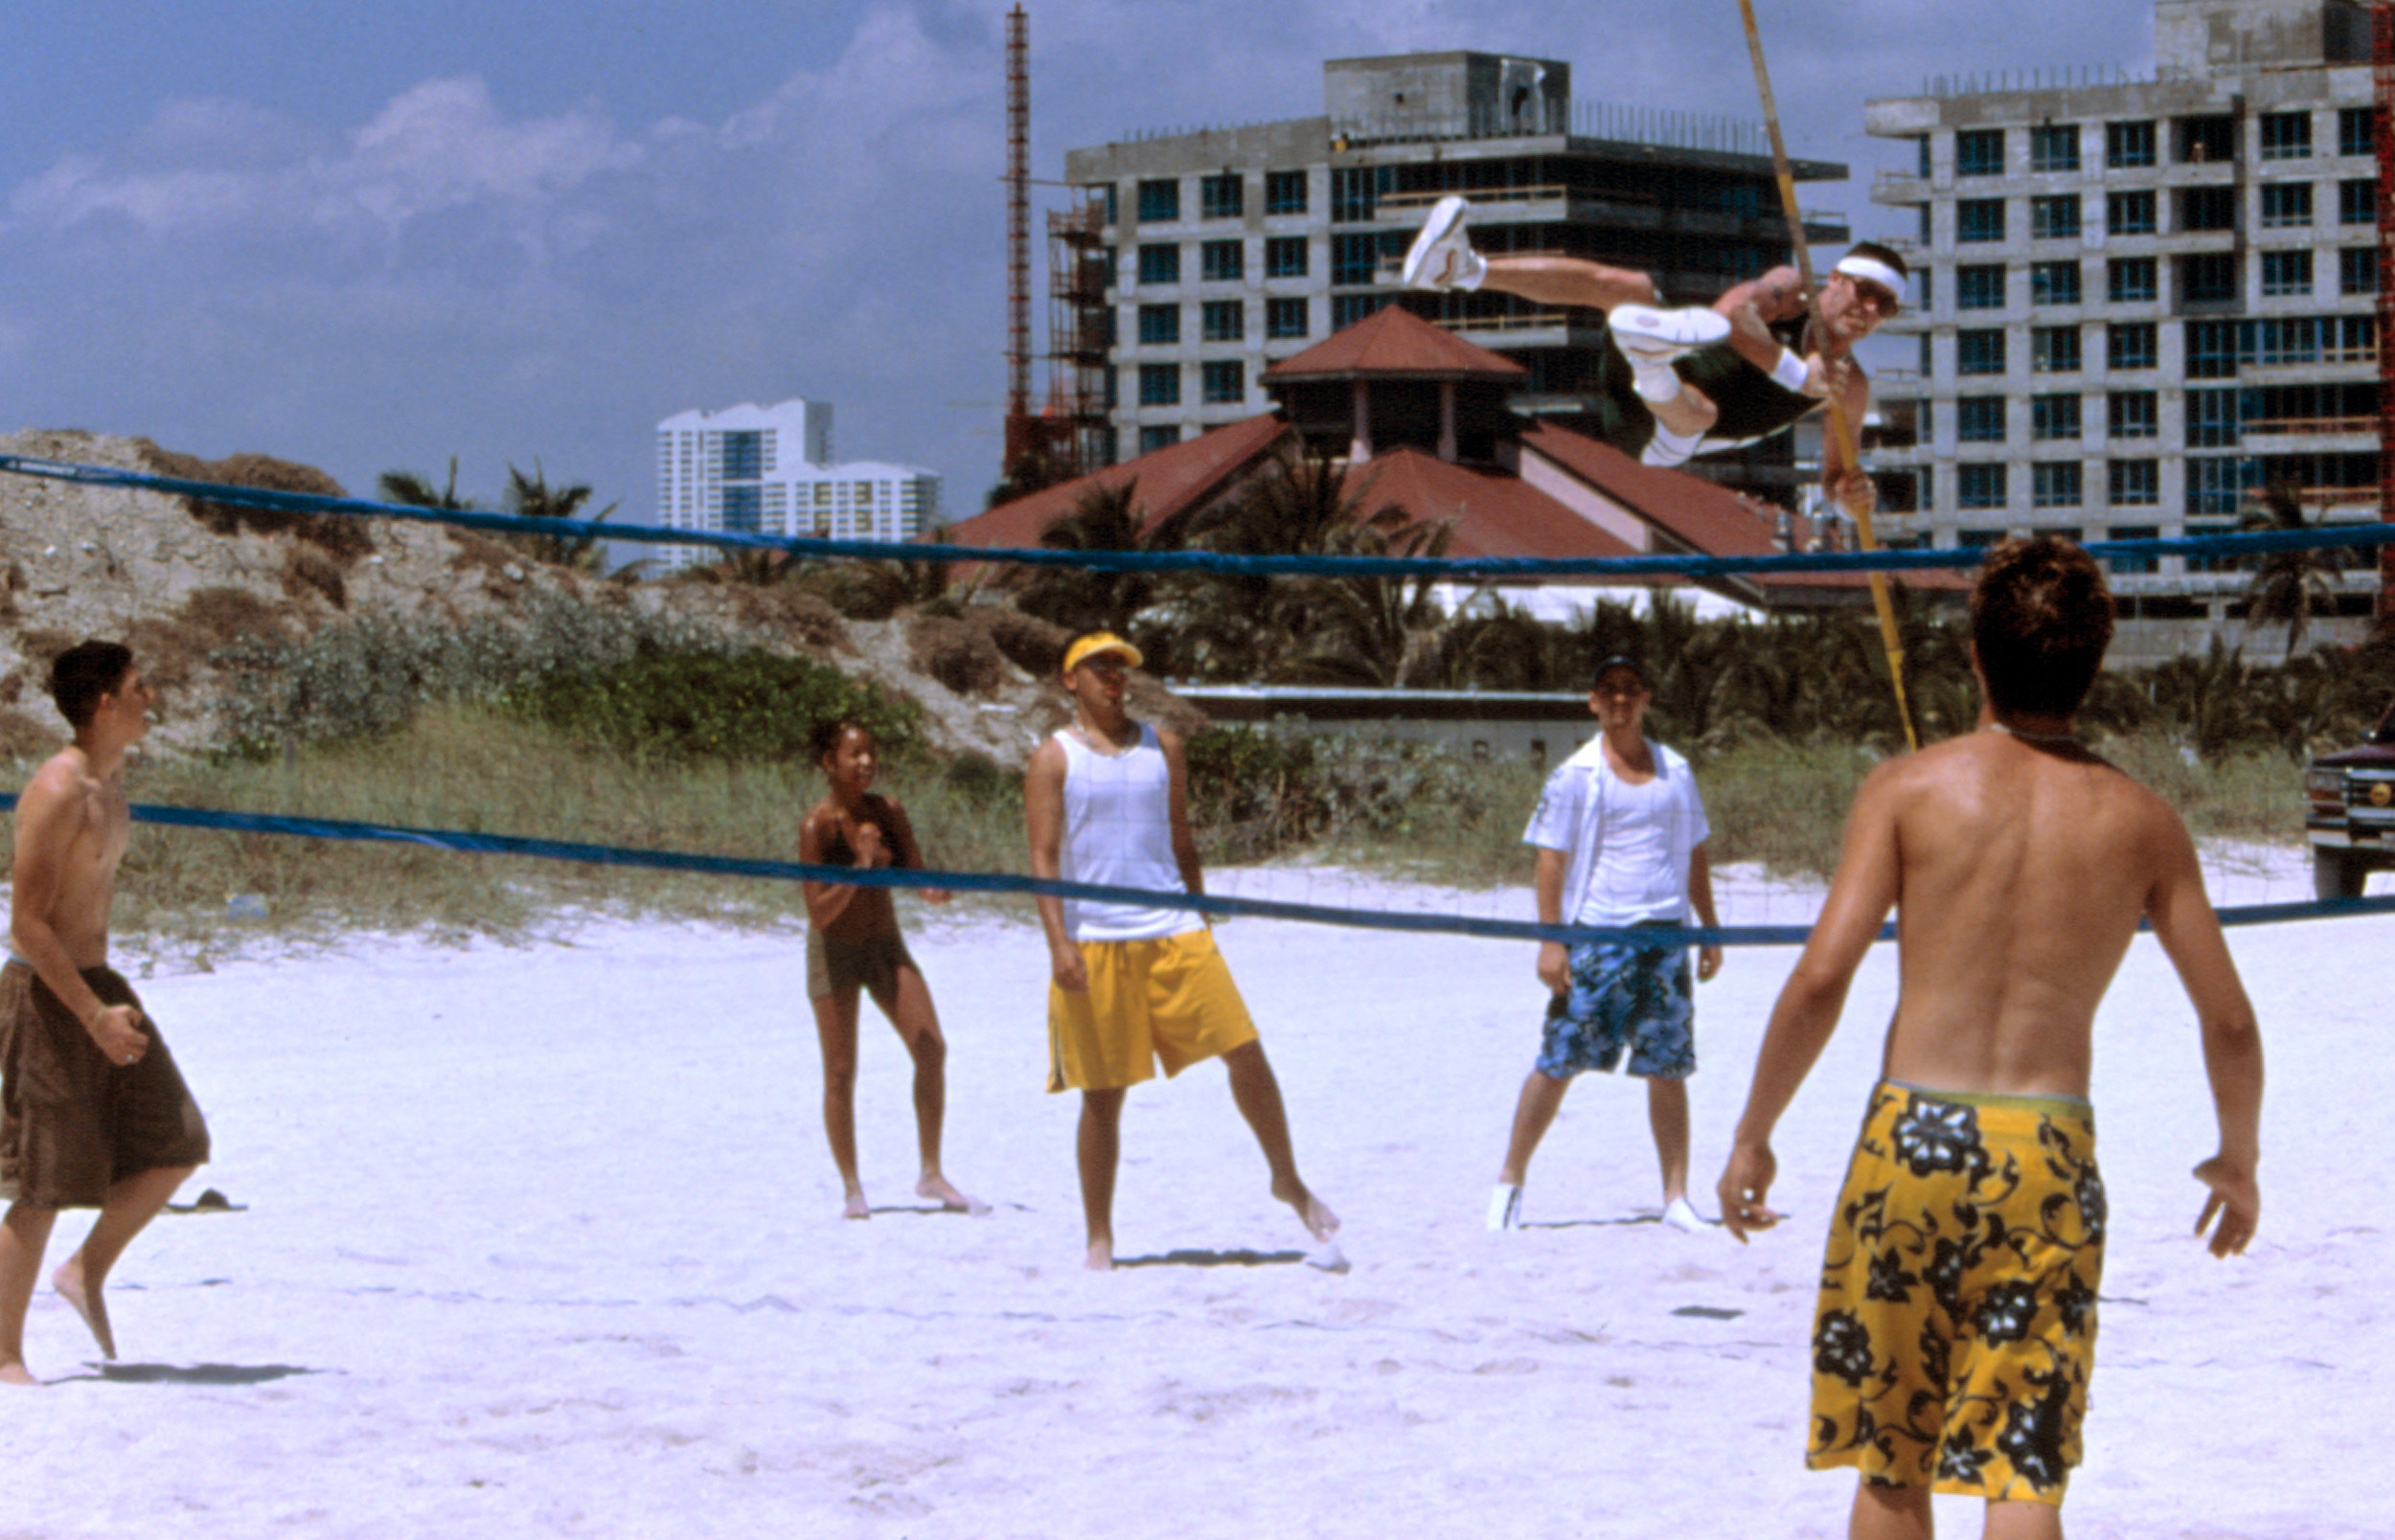 Steve-O leaping over a volleyball net using a high jump stick